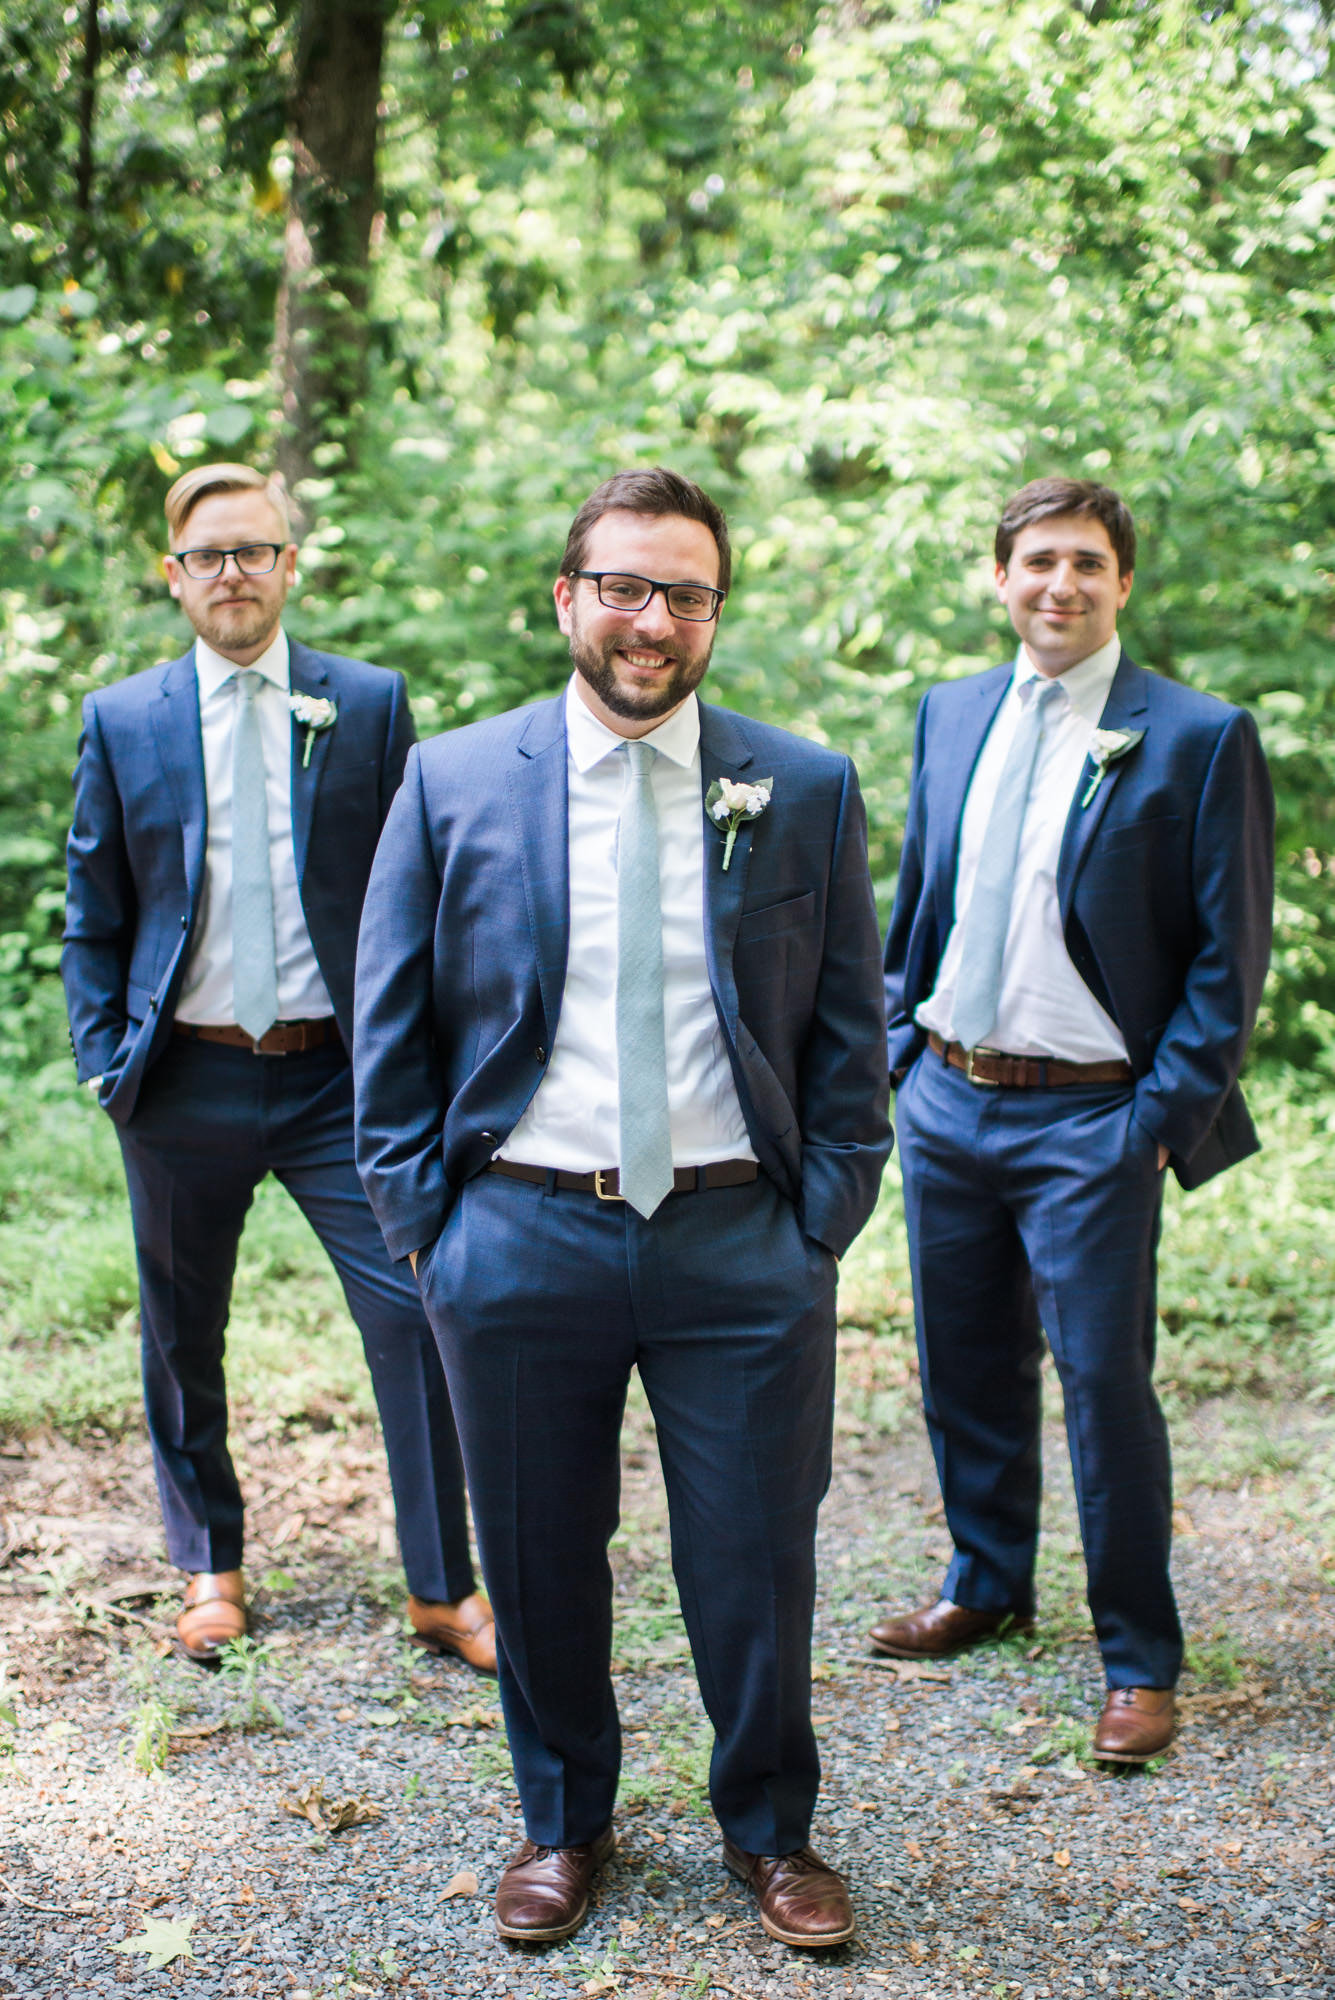 Atlanta-wedding-groomsmen-13.jpg